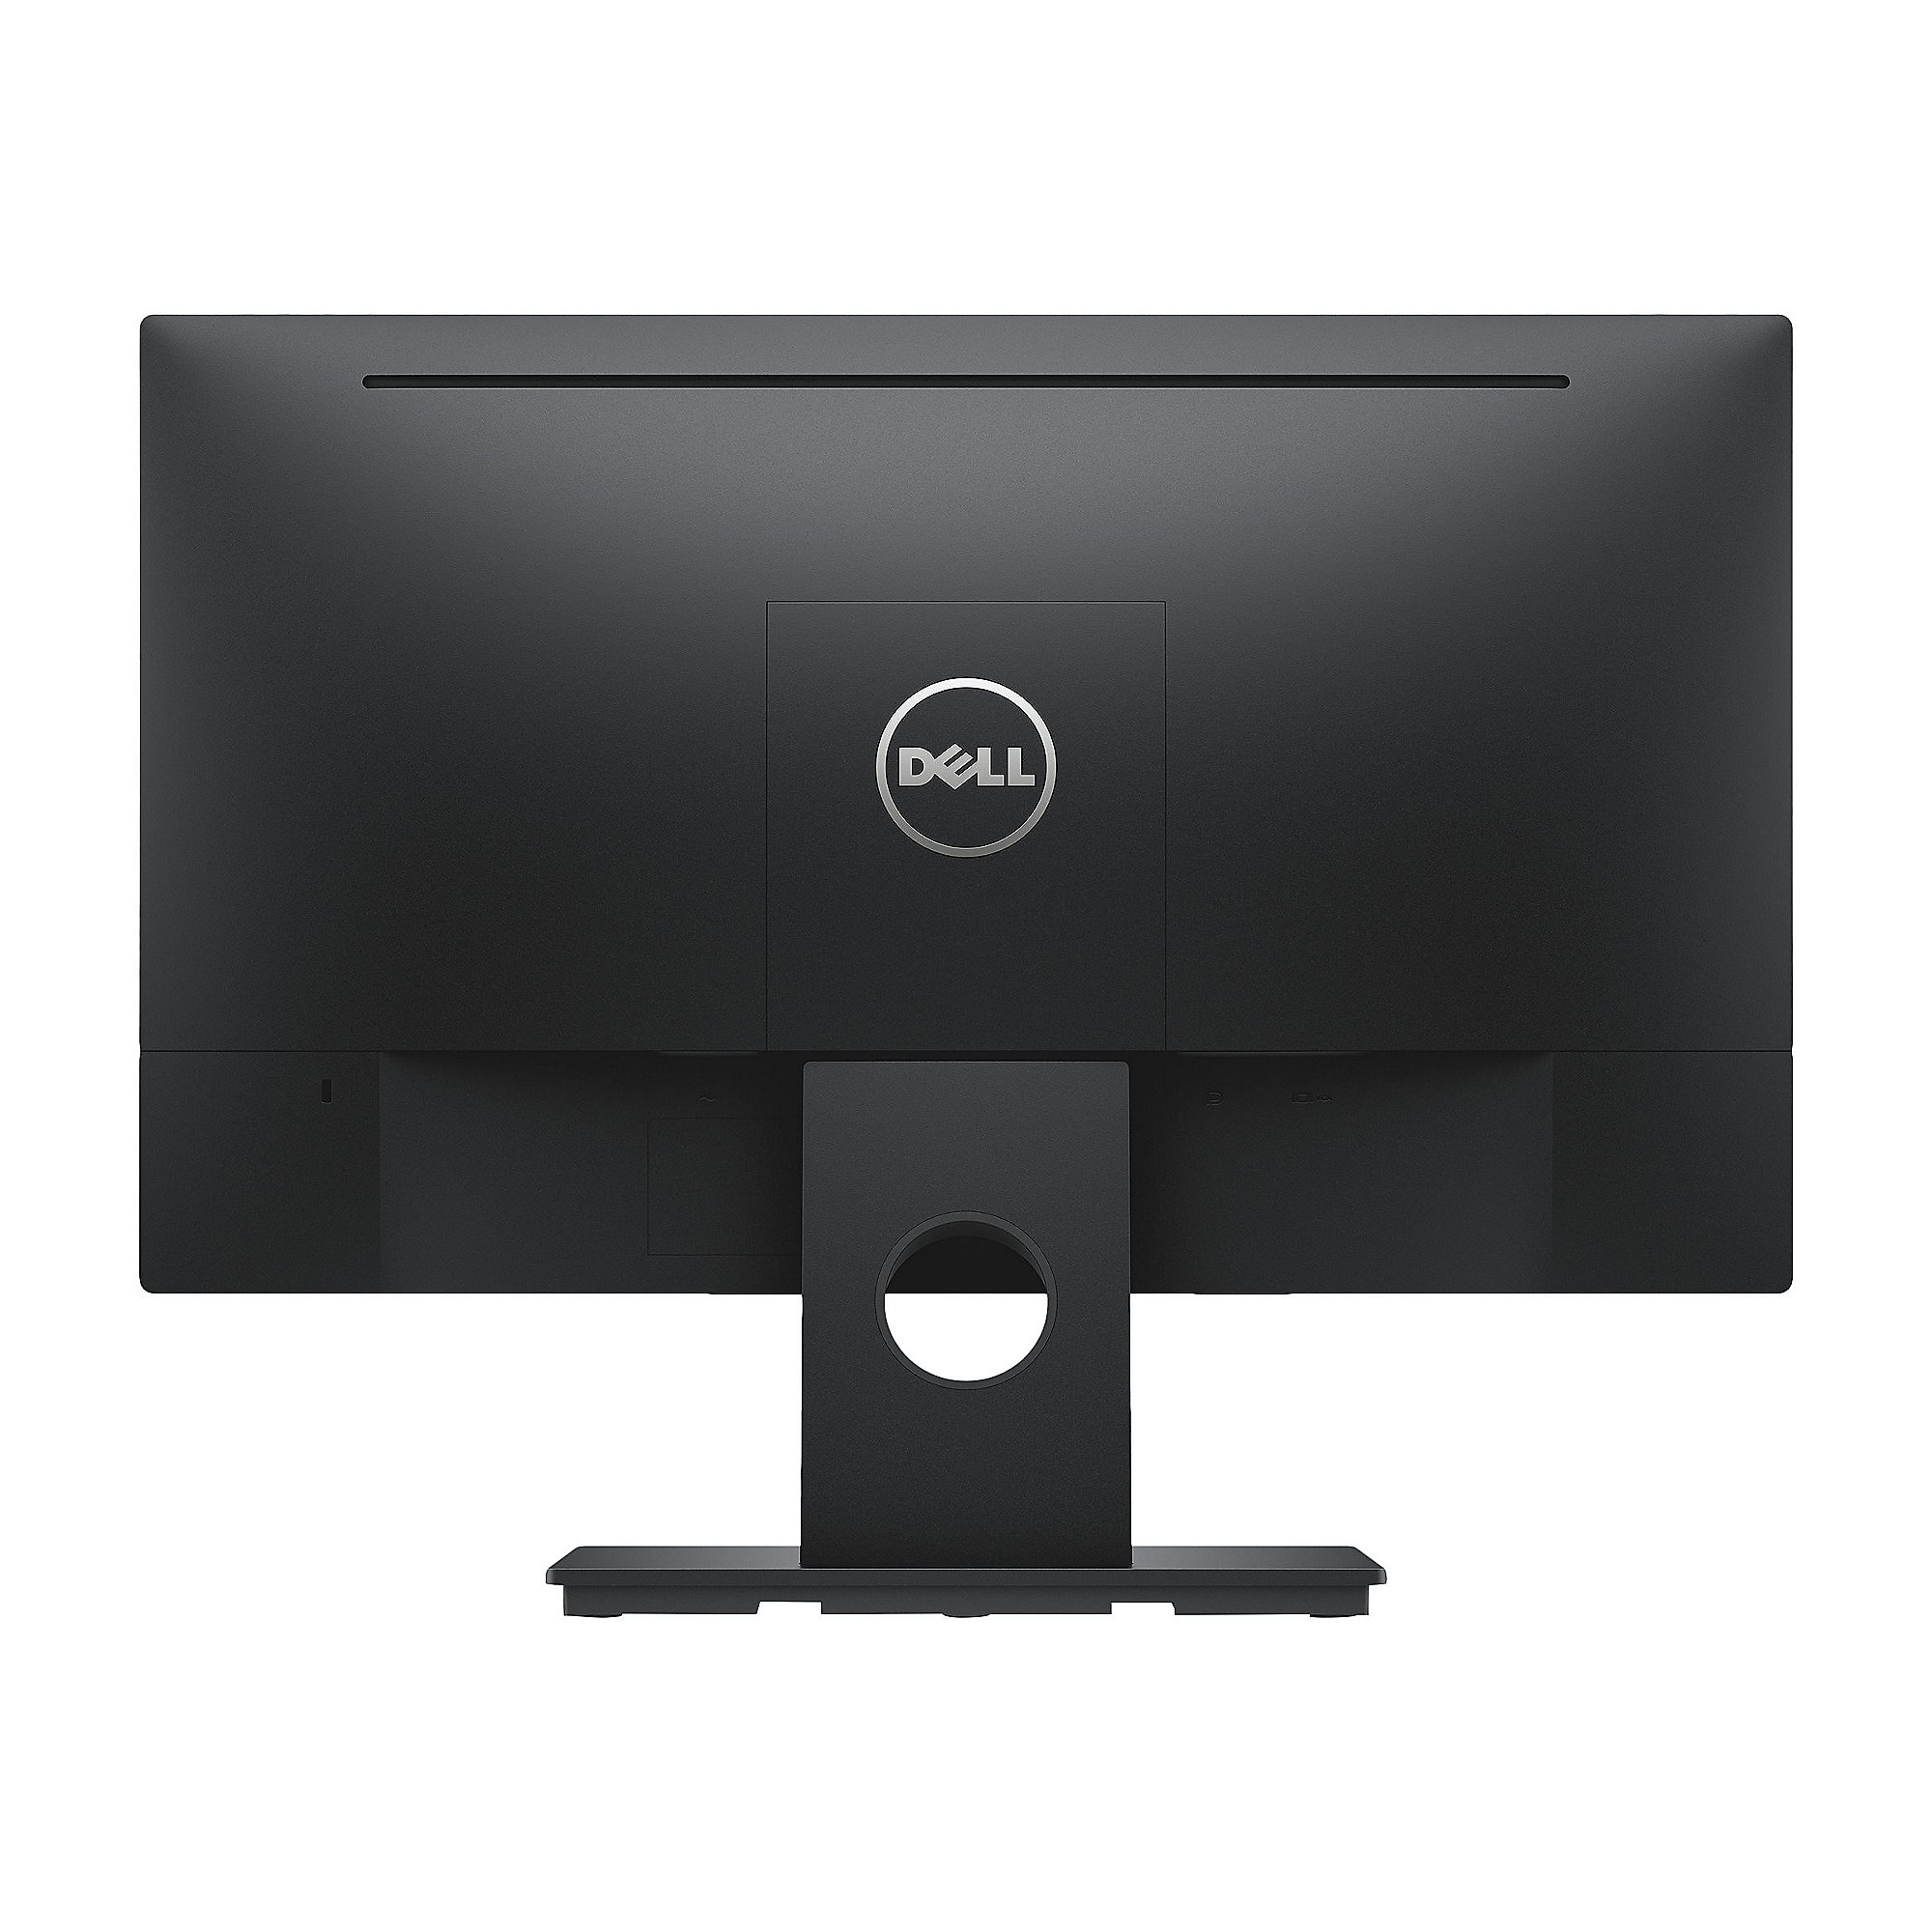 "DELL E2218HN 54,61cm (21,5"") 16:9 Full HD HDMI/VGA 12 ms LED matt"